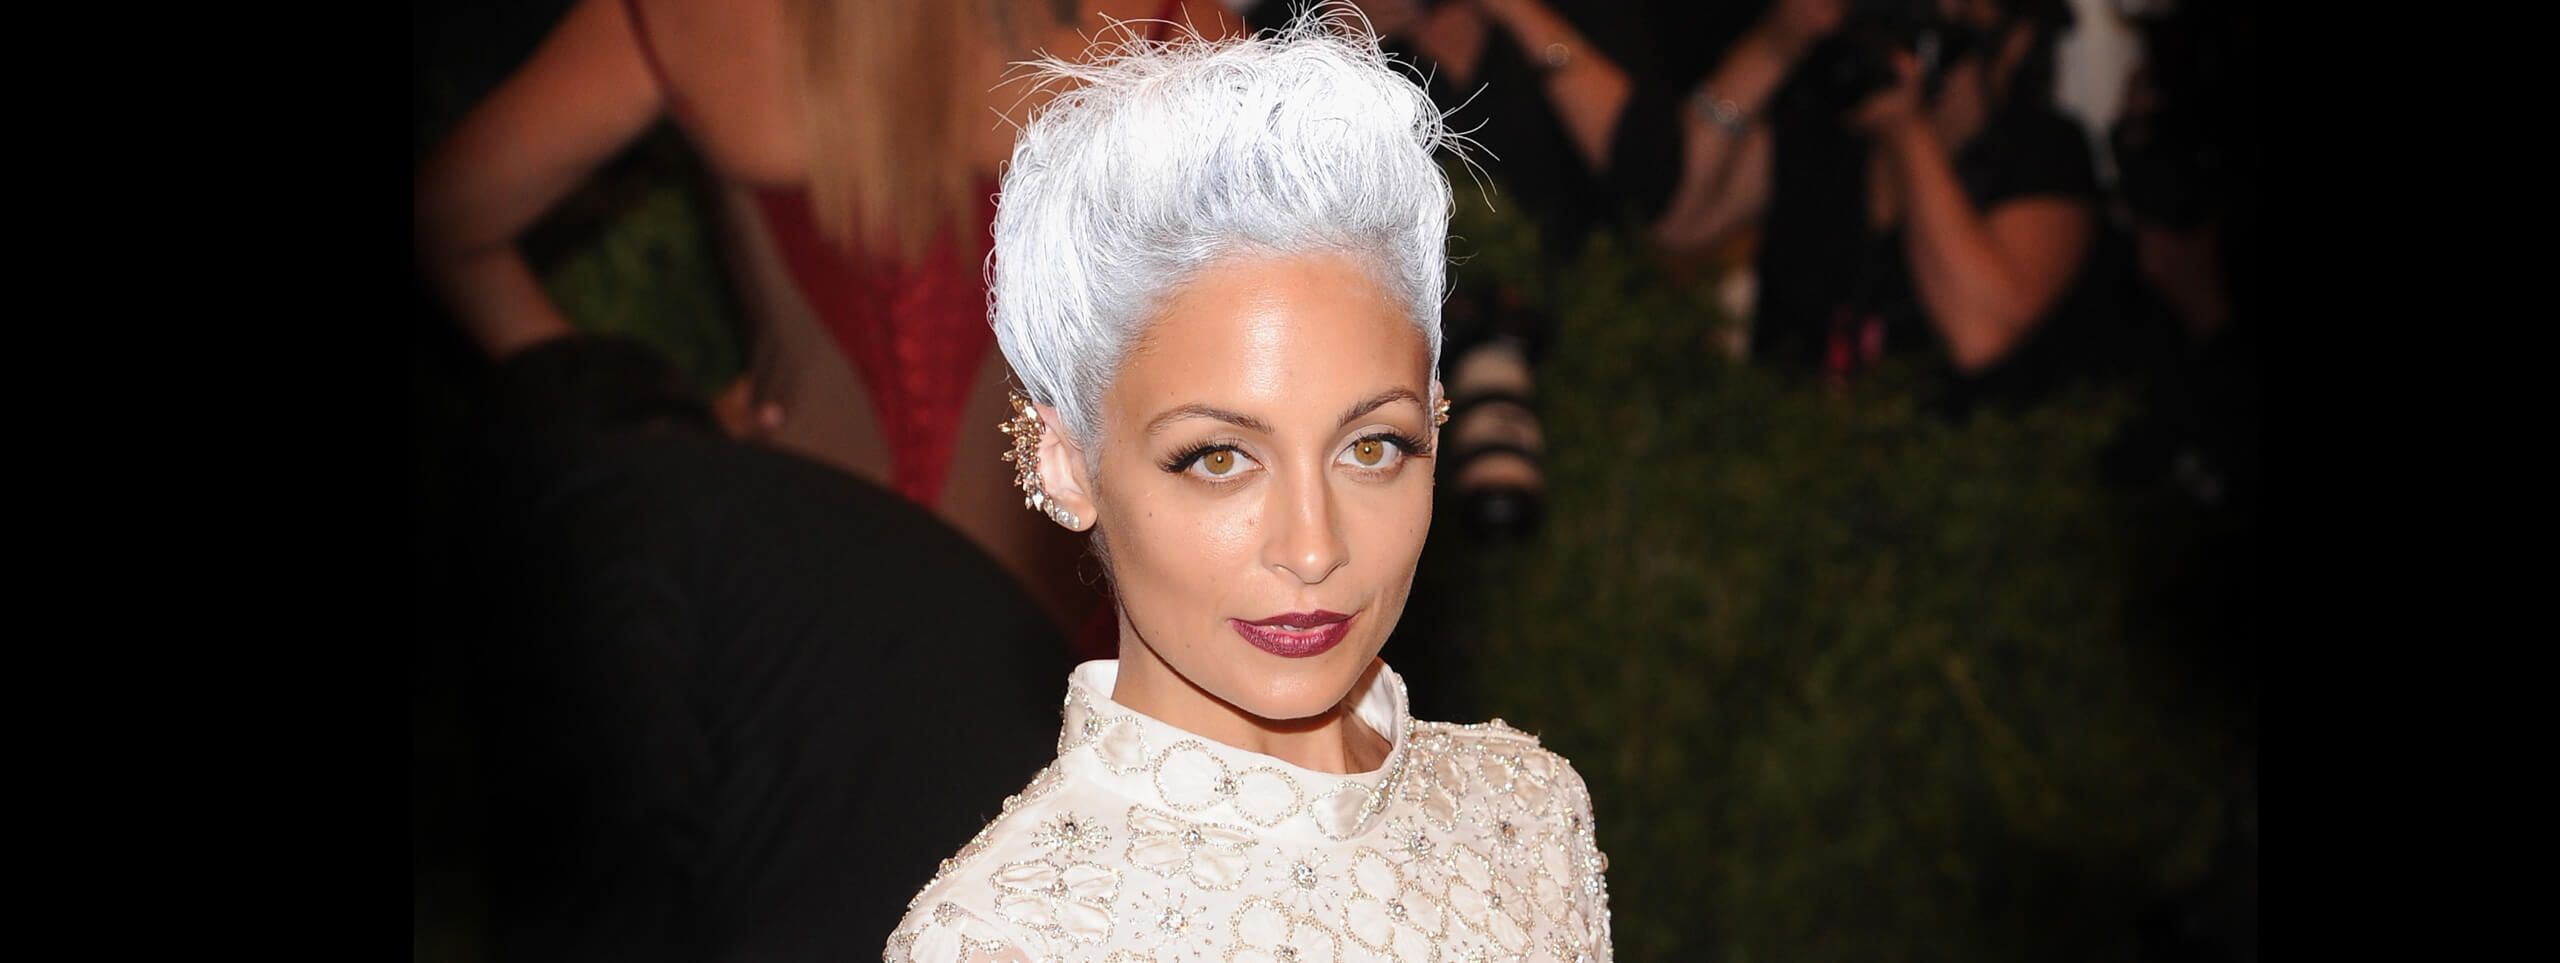 Nicole Richie with short gray hairstyle